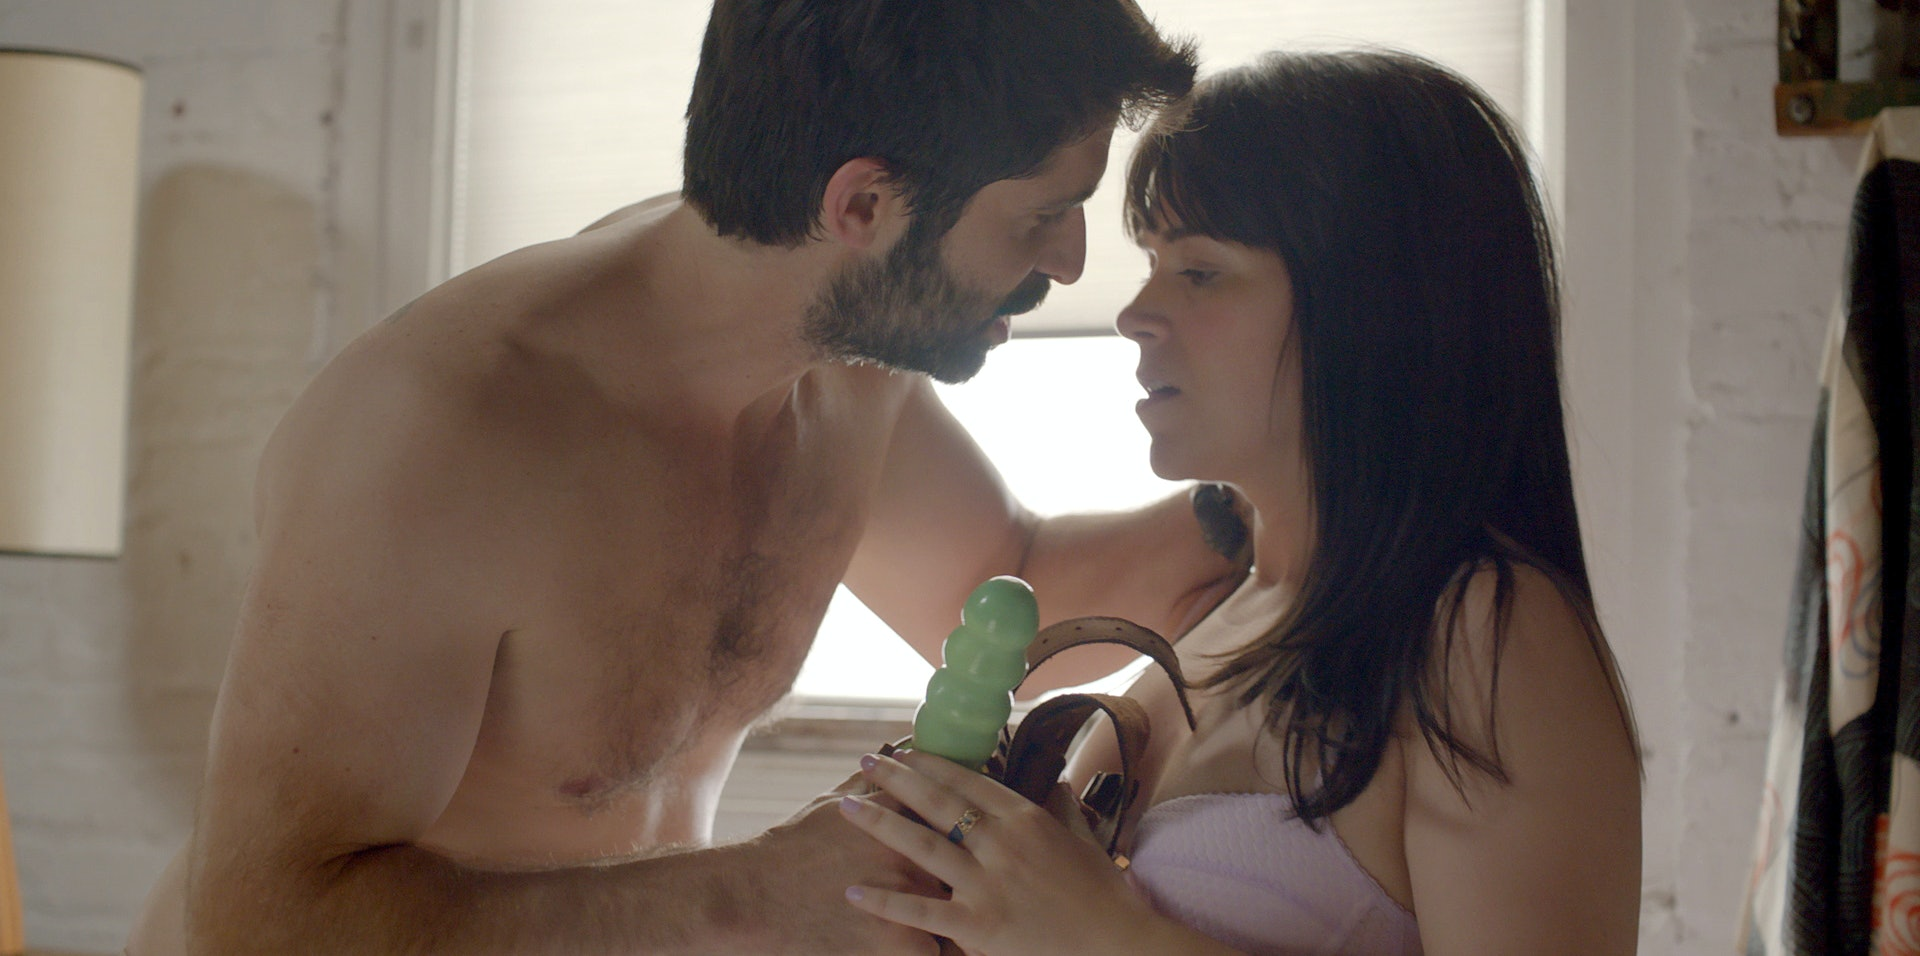 In a Season 2 episode of 'Broad City,' Abbi's neighbor asks her to peg him with a dildo.